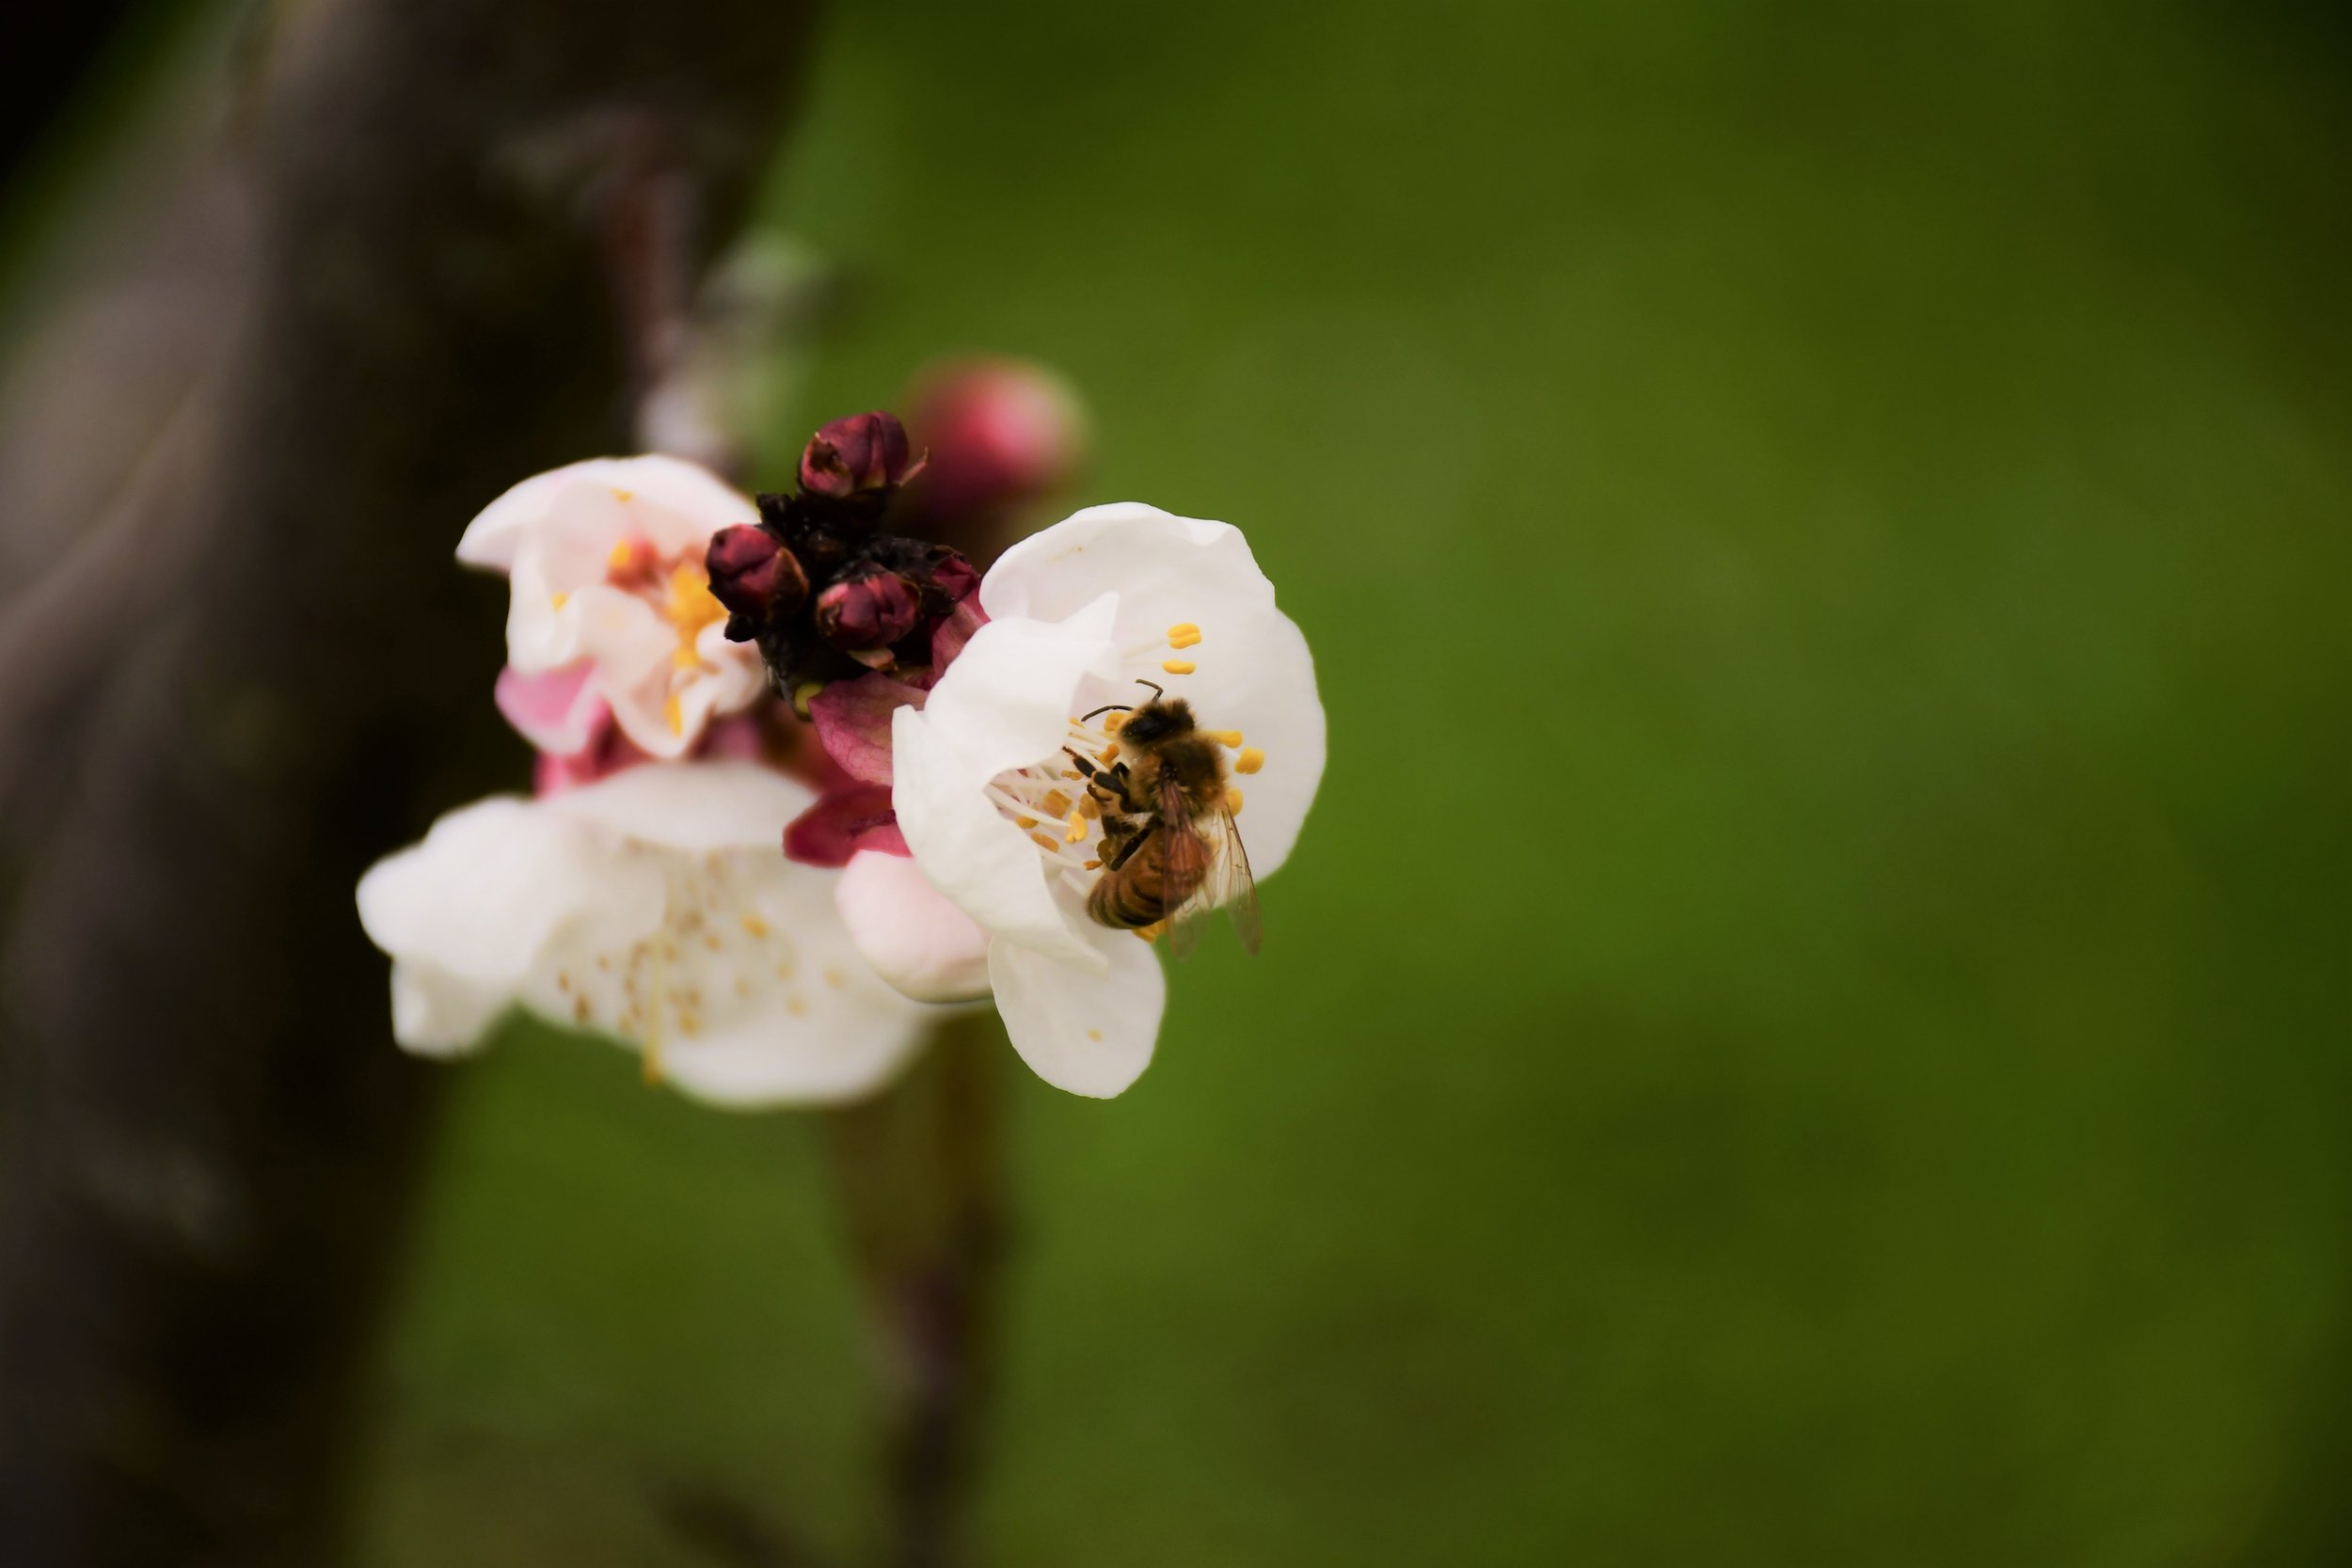 Golden Sweet Blossom with Bee.jpg